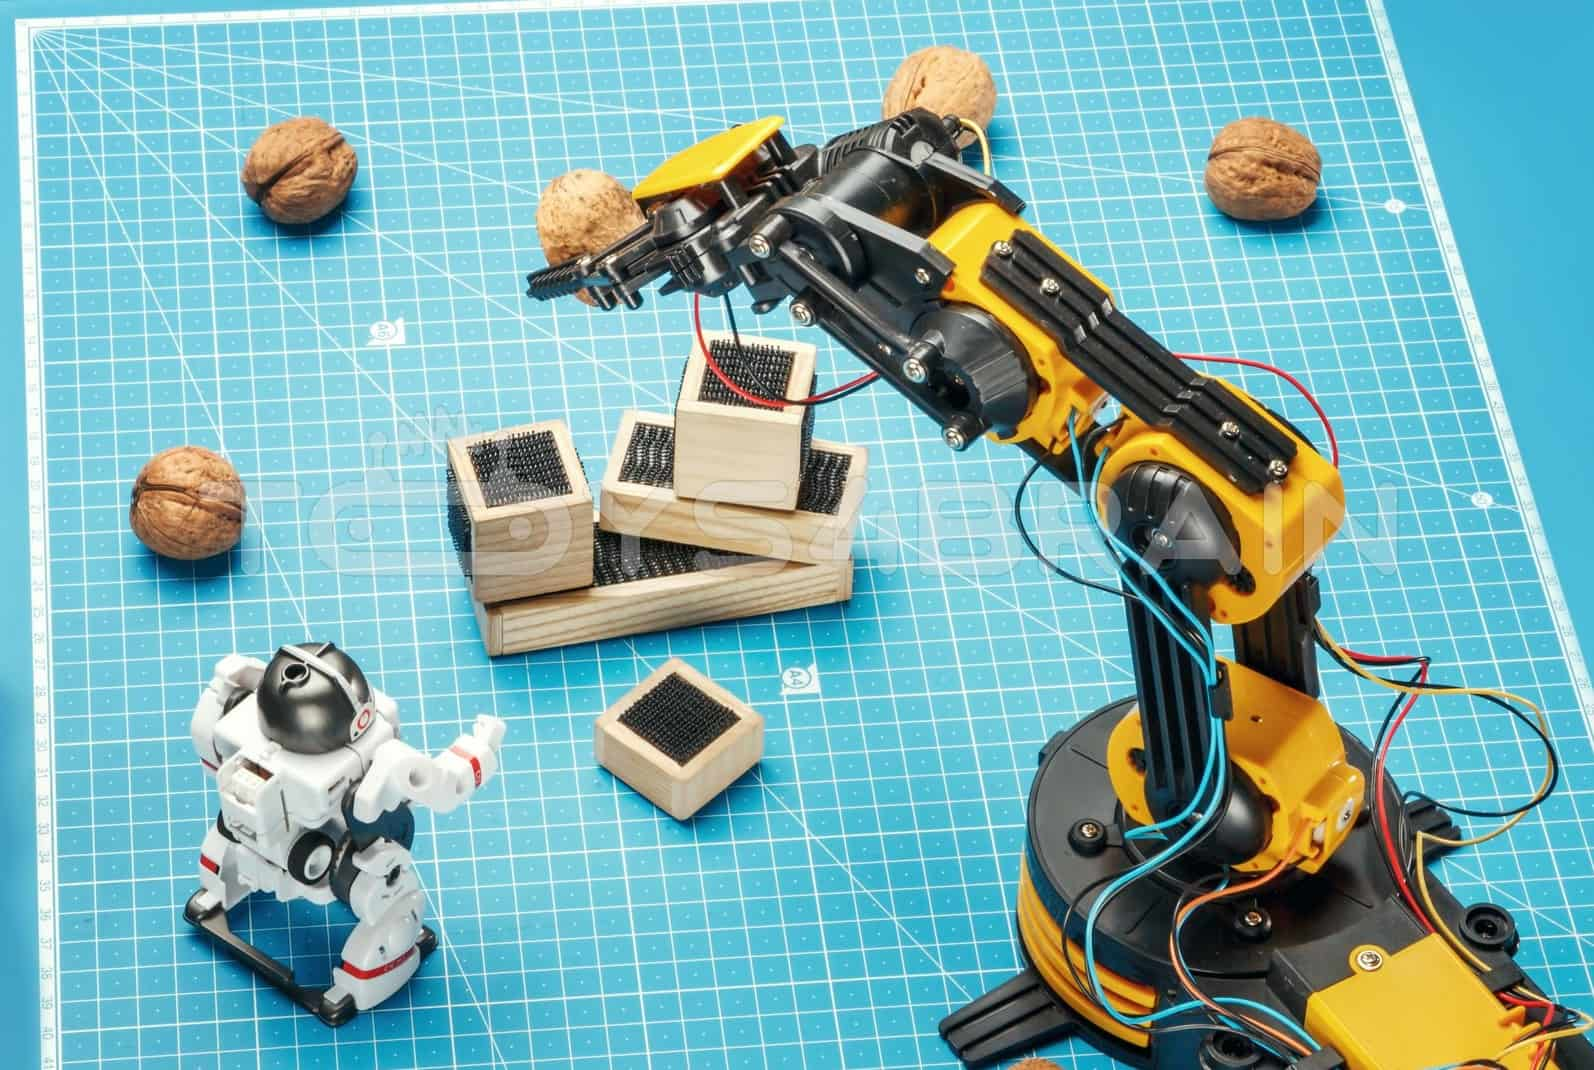 CIC 21-535N Wired Control Robot Arm - Toys4brain – STEM Toys